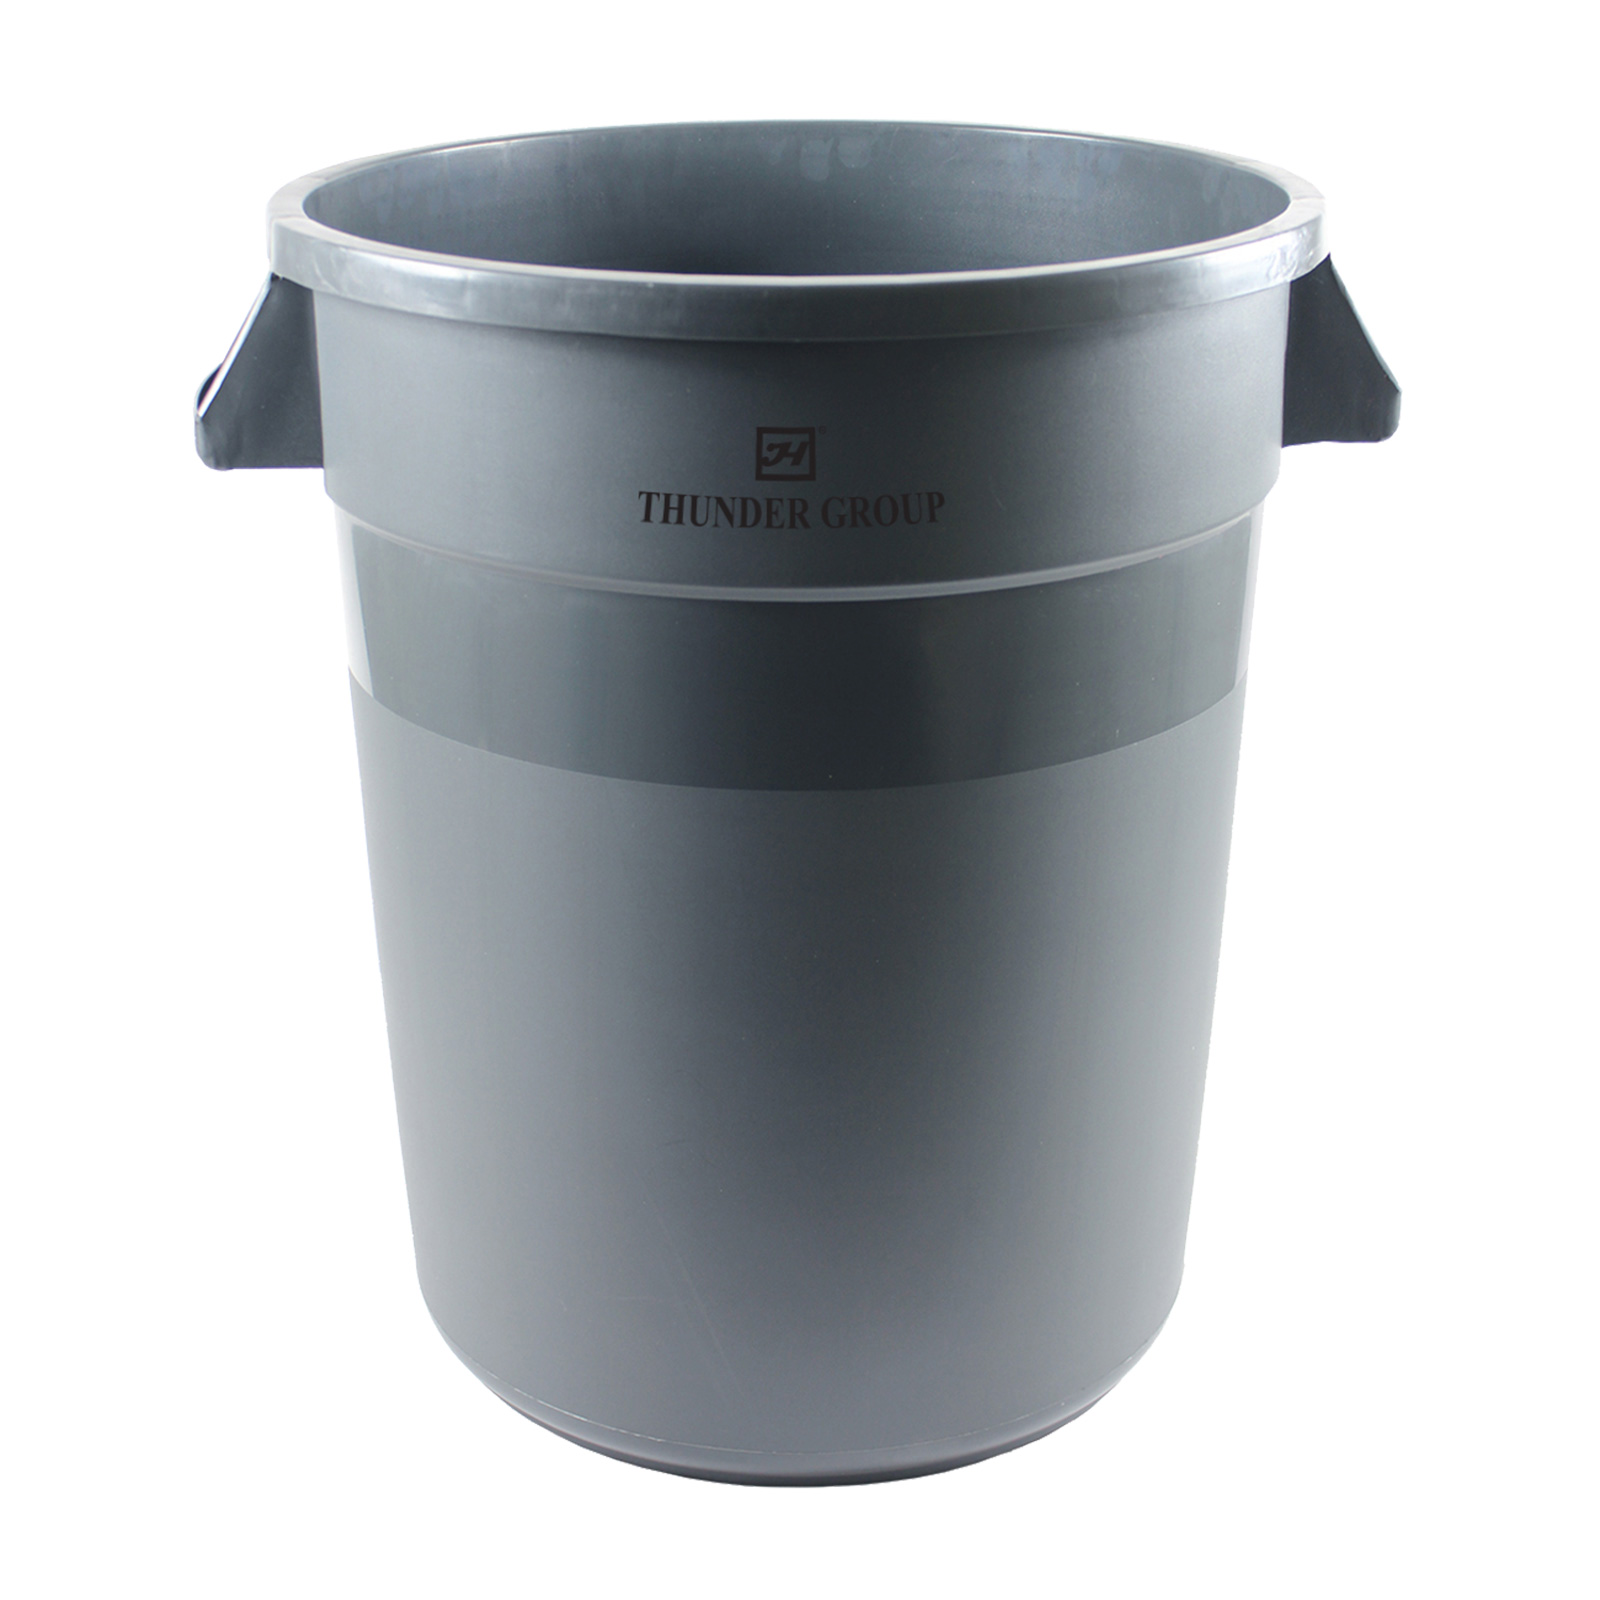 Thunder Group PLTC044G trash can / container, commercial